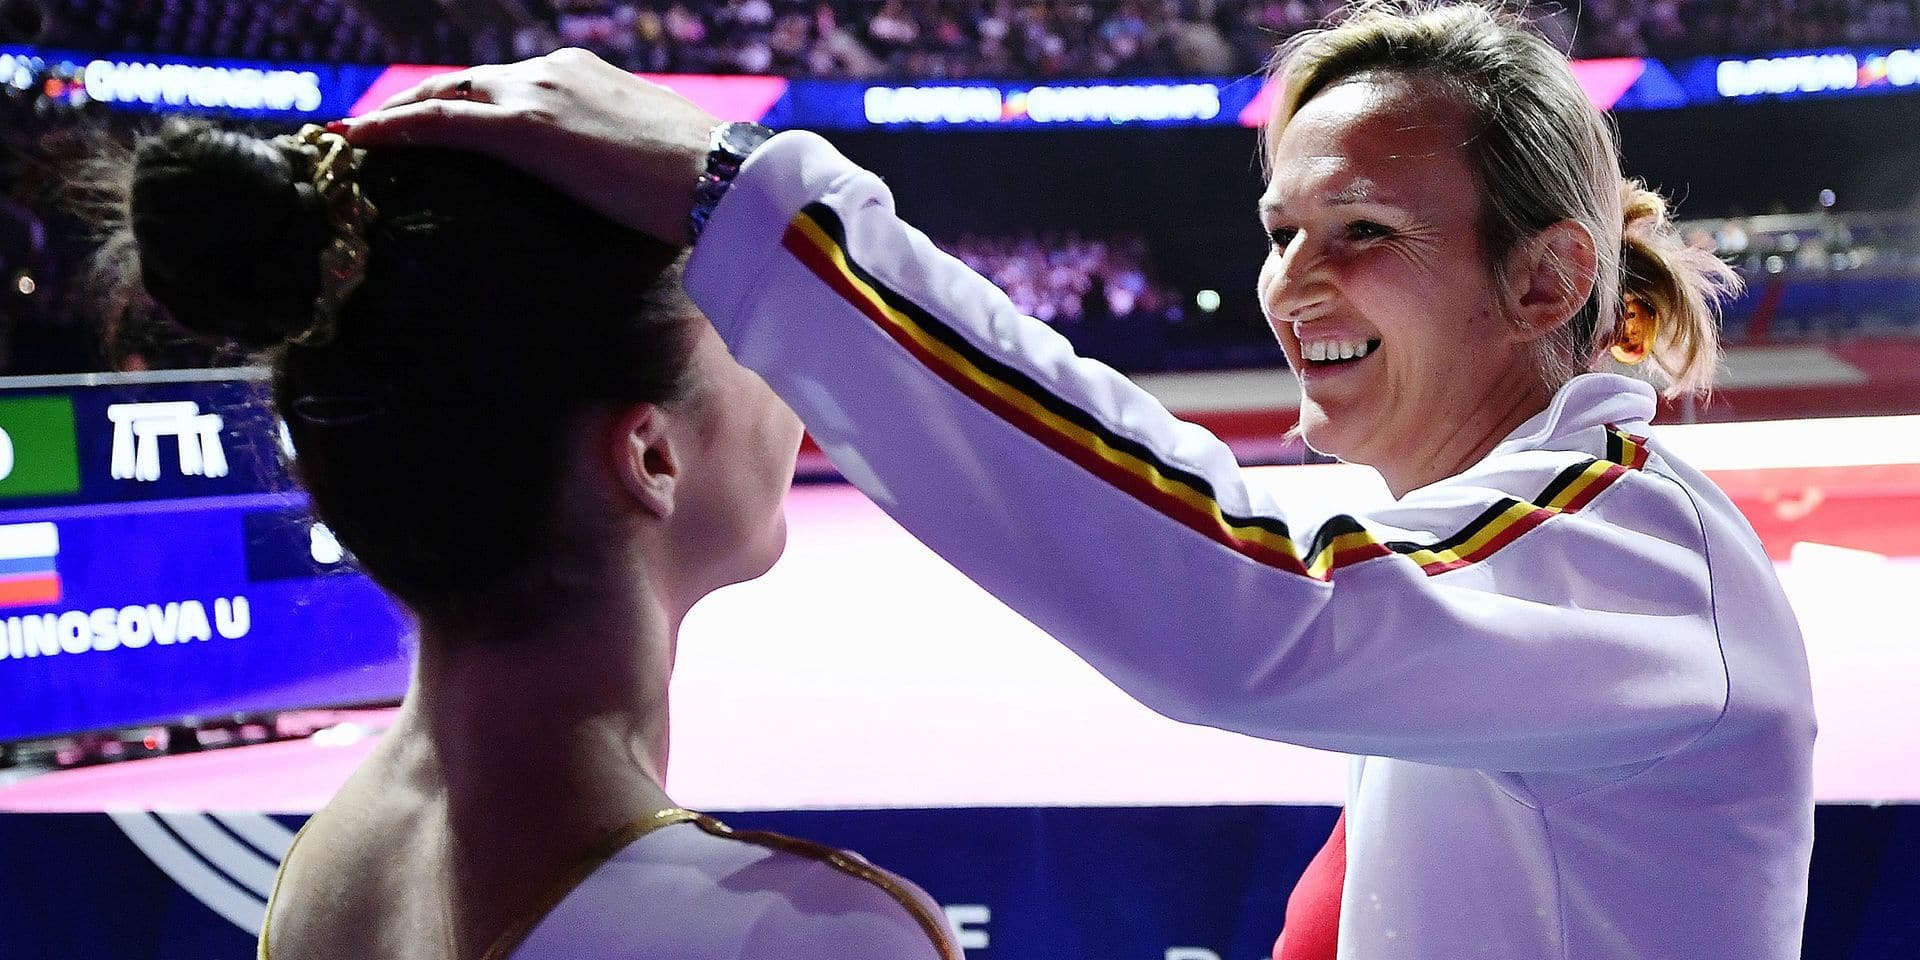 Belgian gymnast Nina Derwael and gymnastics coach Marjorie Heuls celebrate after Derwael won the women's uneven bars final at the artistic gymnastics event at the European Championships, in Glasgow, Scotland, Sunday 05 August 2018. European championships of several sports will be held in Glasgow from 03 to 12 August. BELGA PHOTO ERIC LALMAND